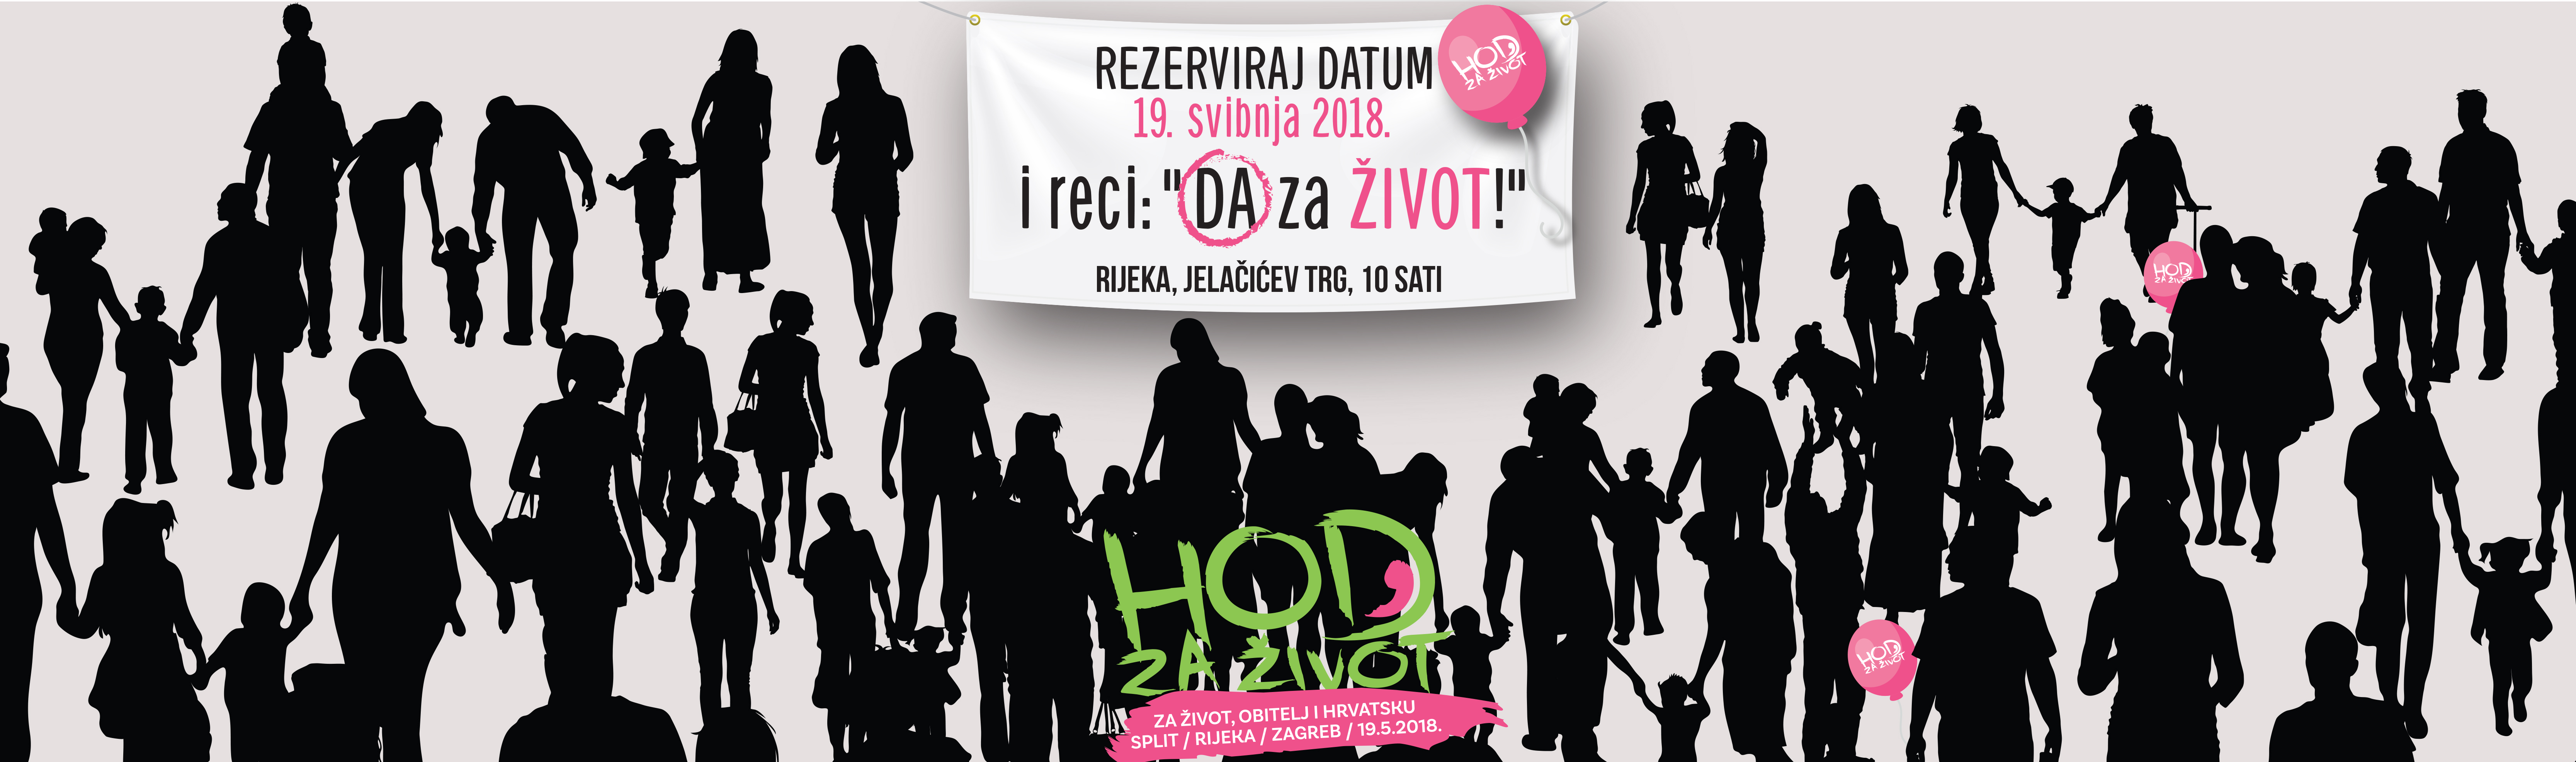 Hod za život – video poziv